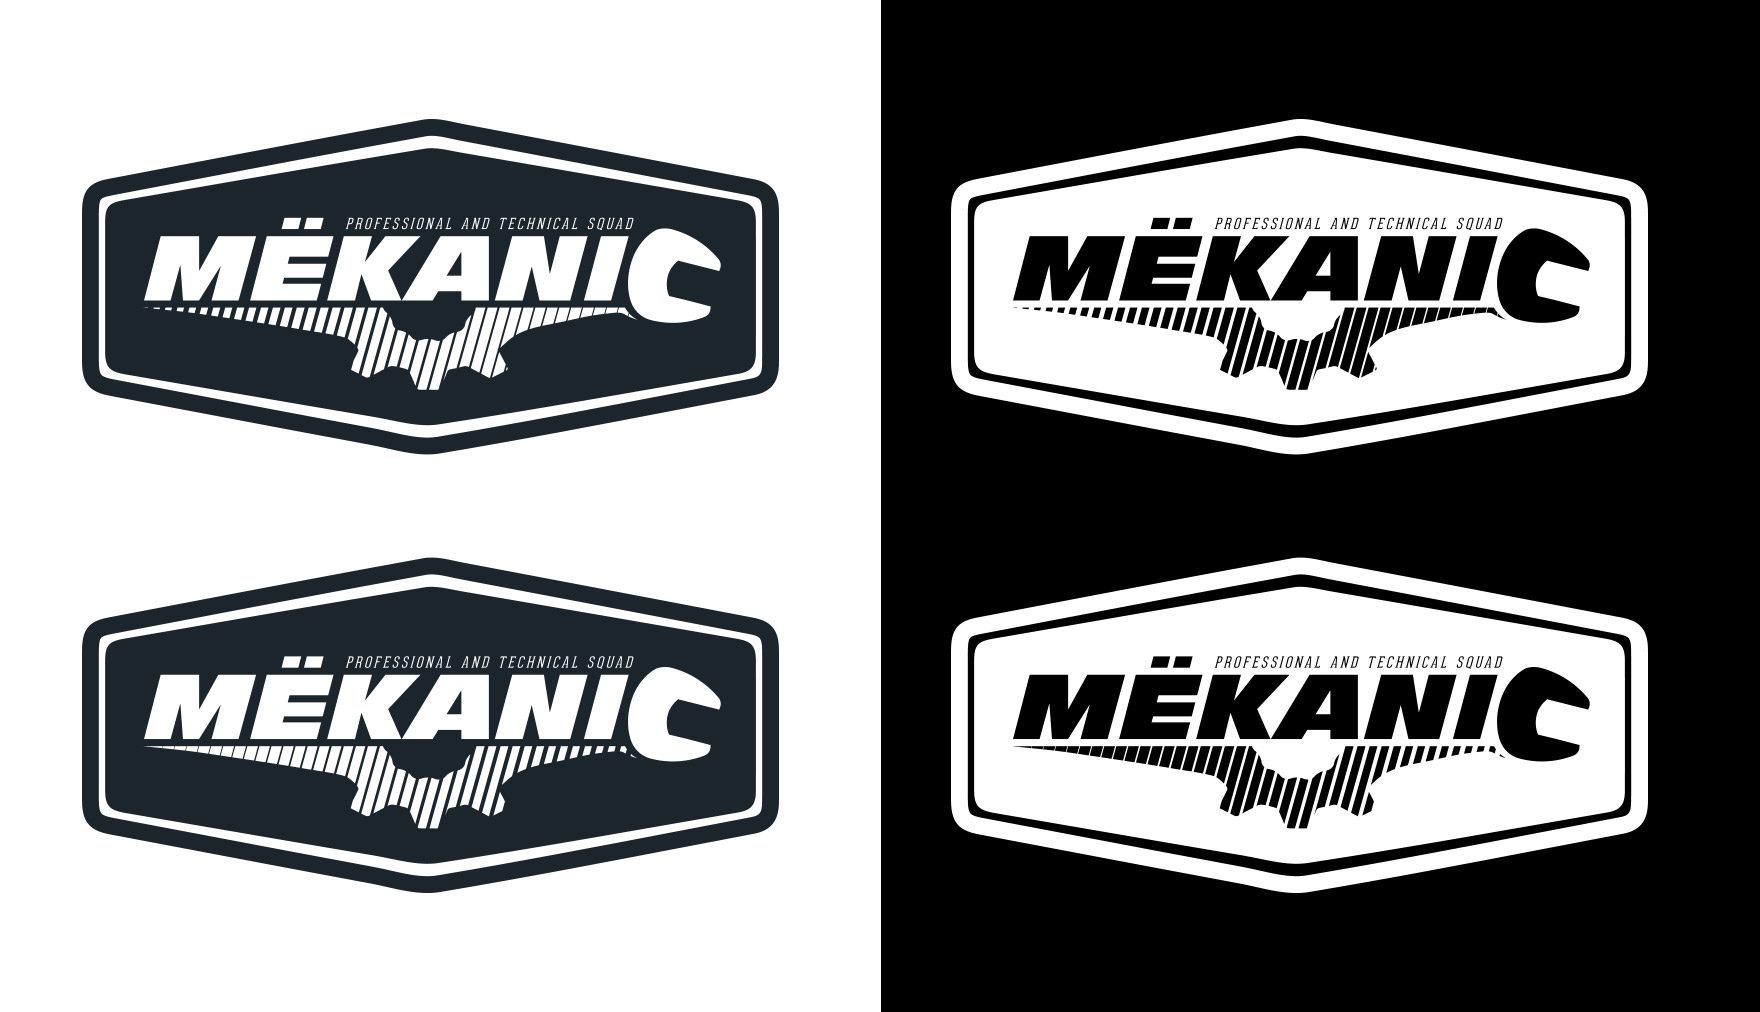 Logo Design by olii - Entry No. 215 in the Logo Design Contest Creative Logo Design for MËKANIC - Professional and technical squad.